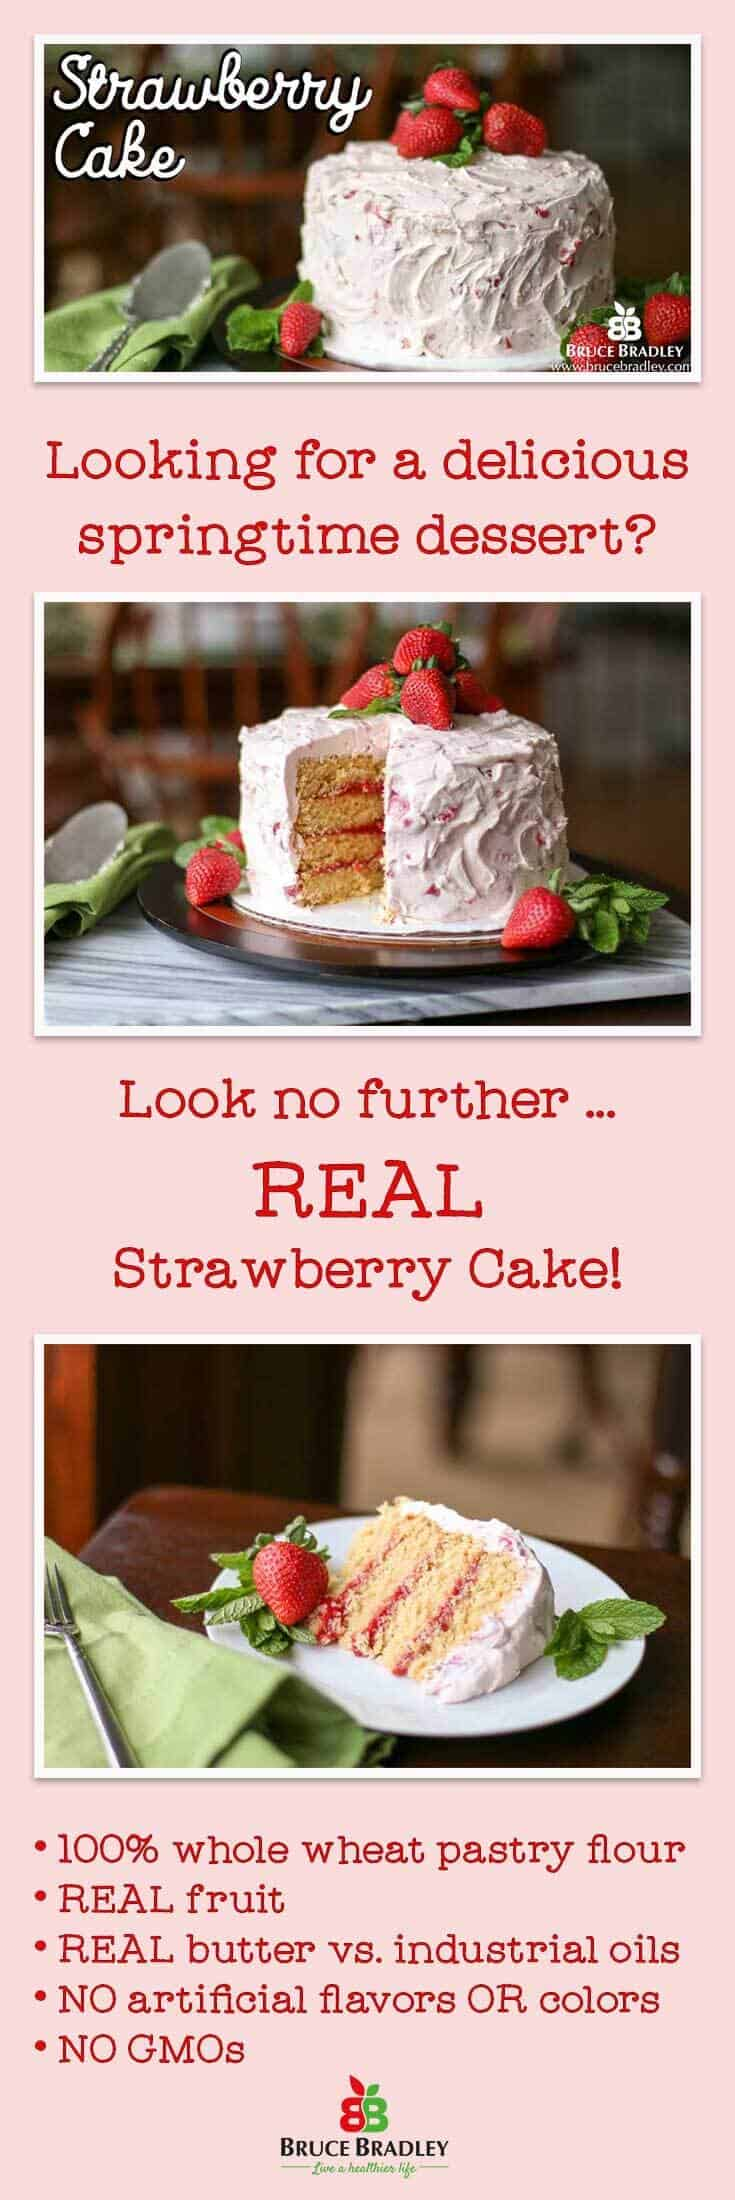 Looking for a special dessert that's perfect for a springtime? Bruce Bradley's Strawberry Cake recipe is made with real ingredients like 100% Whole Wheat flour and proves cakes may be indulgent, but their ingredients don't have to read like a lab experiment.